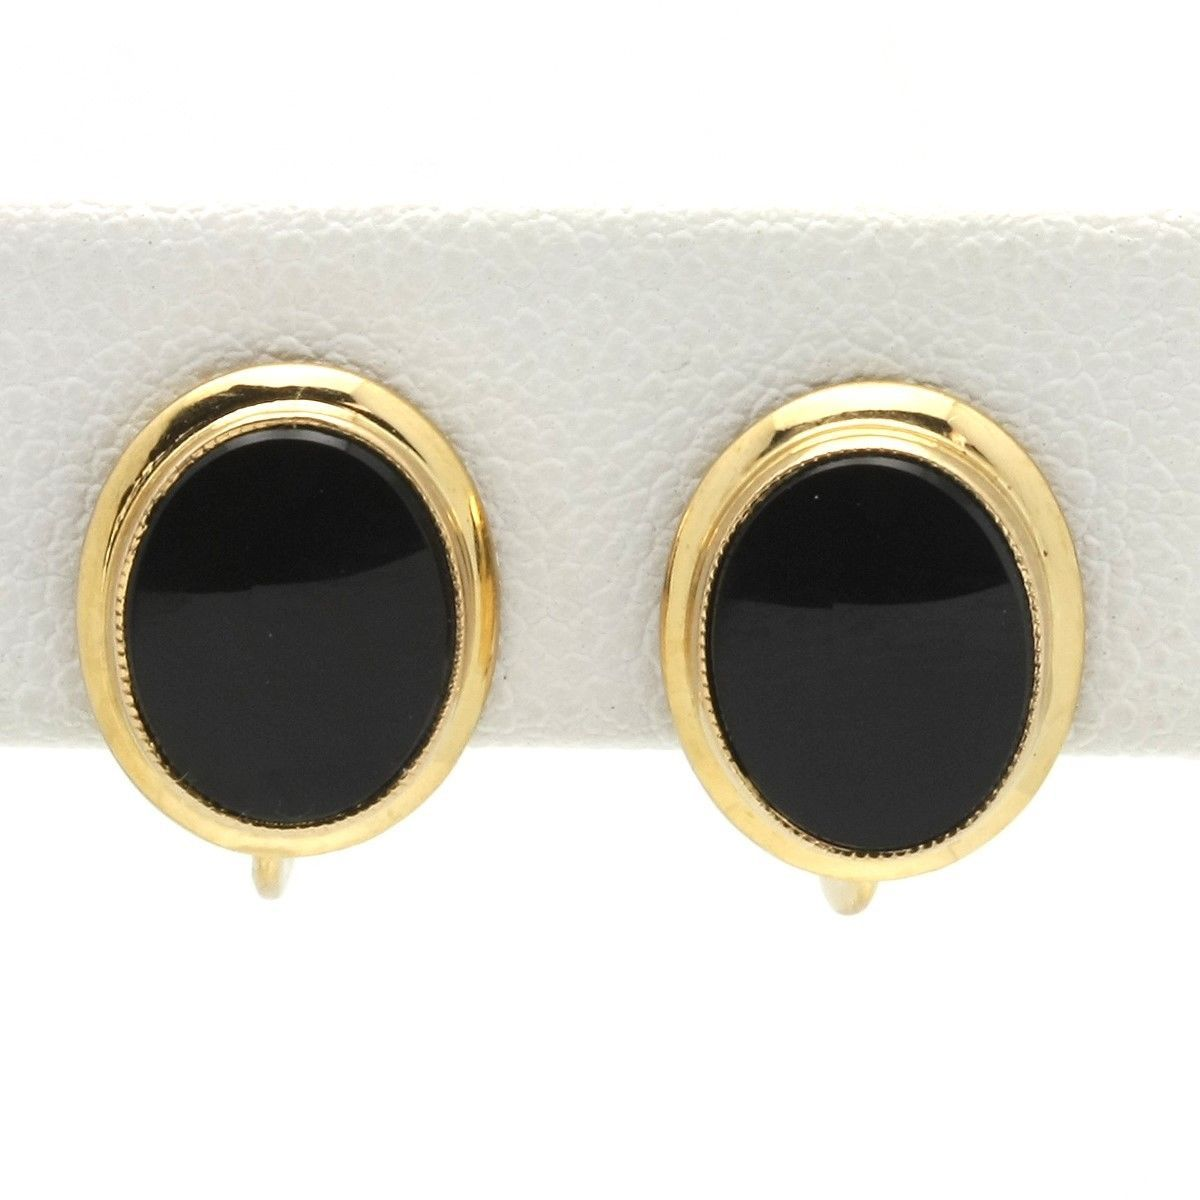 Vintage 10K Gold Black Onyx Screwback Earrings Budlong Docherty & Armstrong image 1